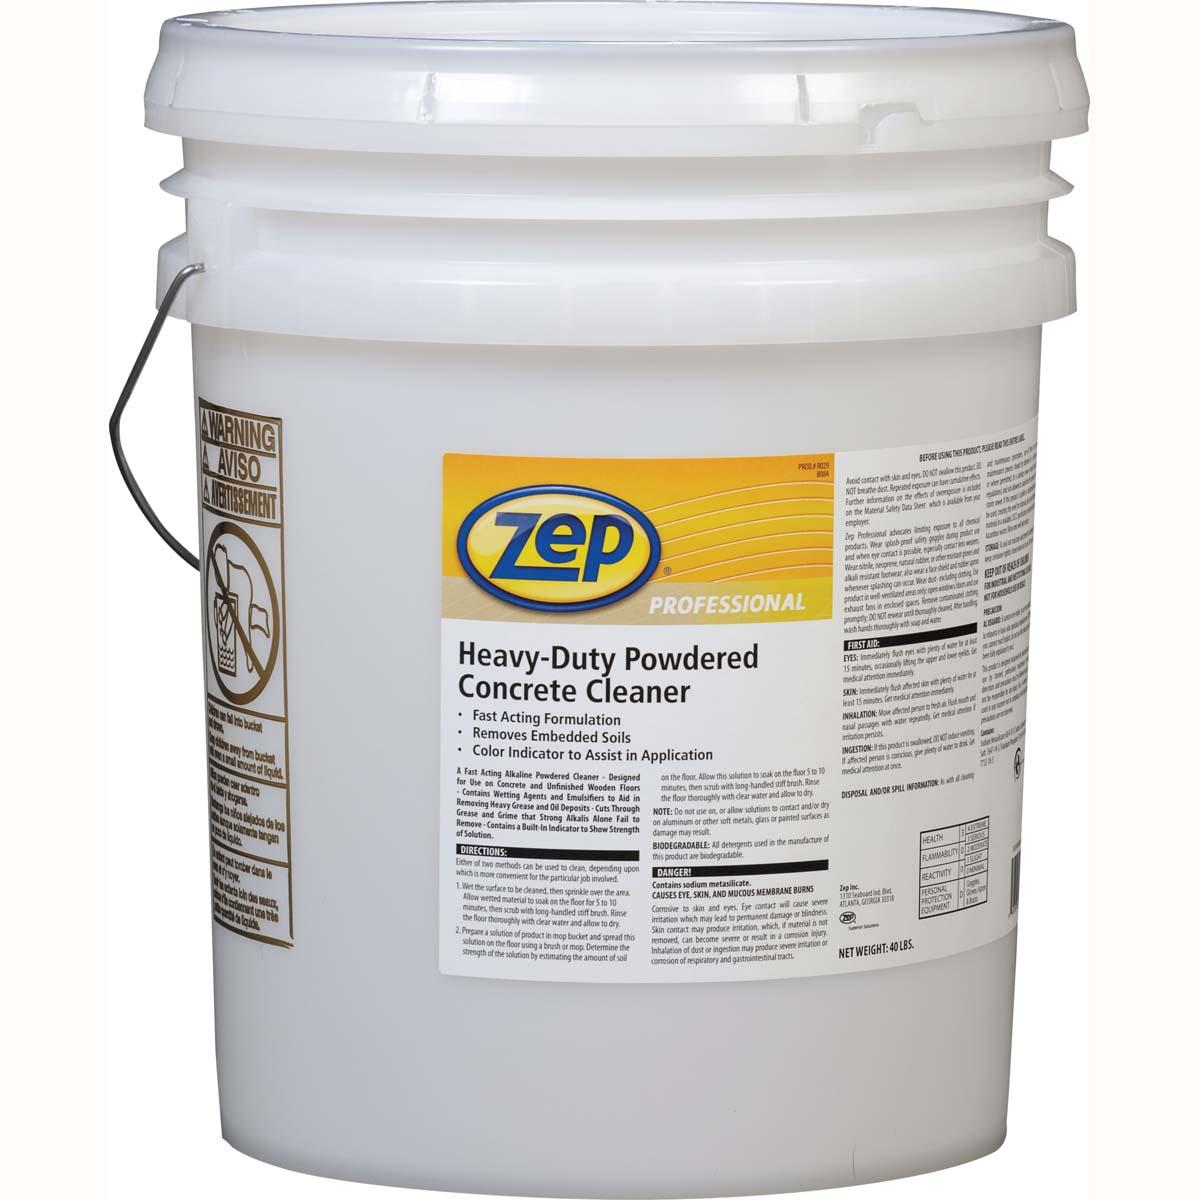 ZEP Heavy-Duty-Powdered-Concrete-Cleaner